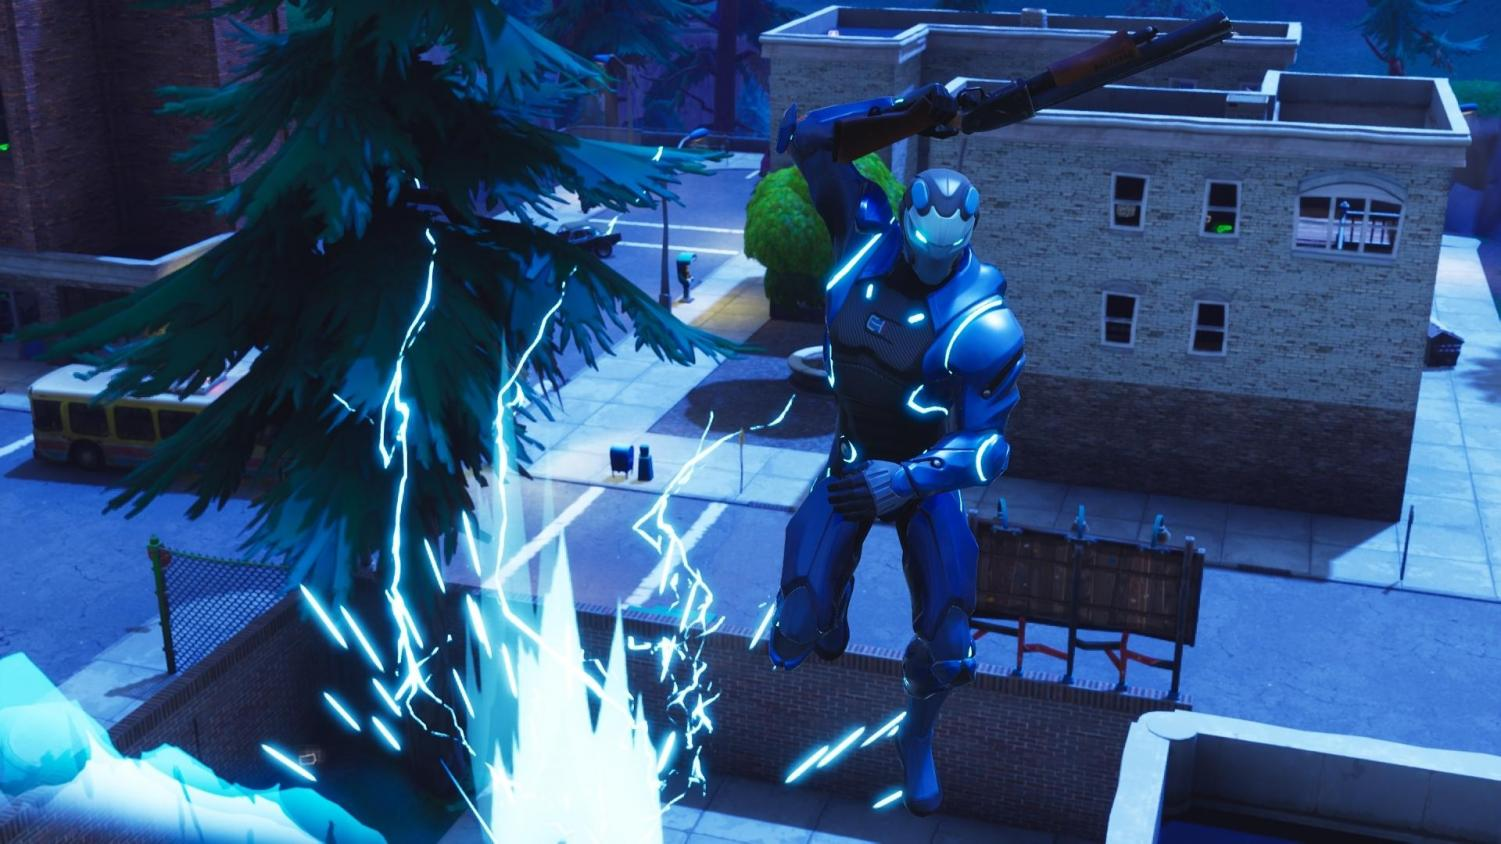 A brave user launches into battle with an overpowered pump shotgun and a fully upgraded BattlePass skin. Every few months Fortnite updates their game with a new season, adding in skins, dances, and updates to the map.